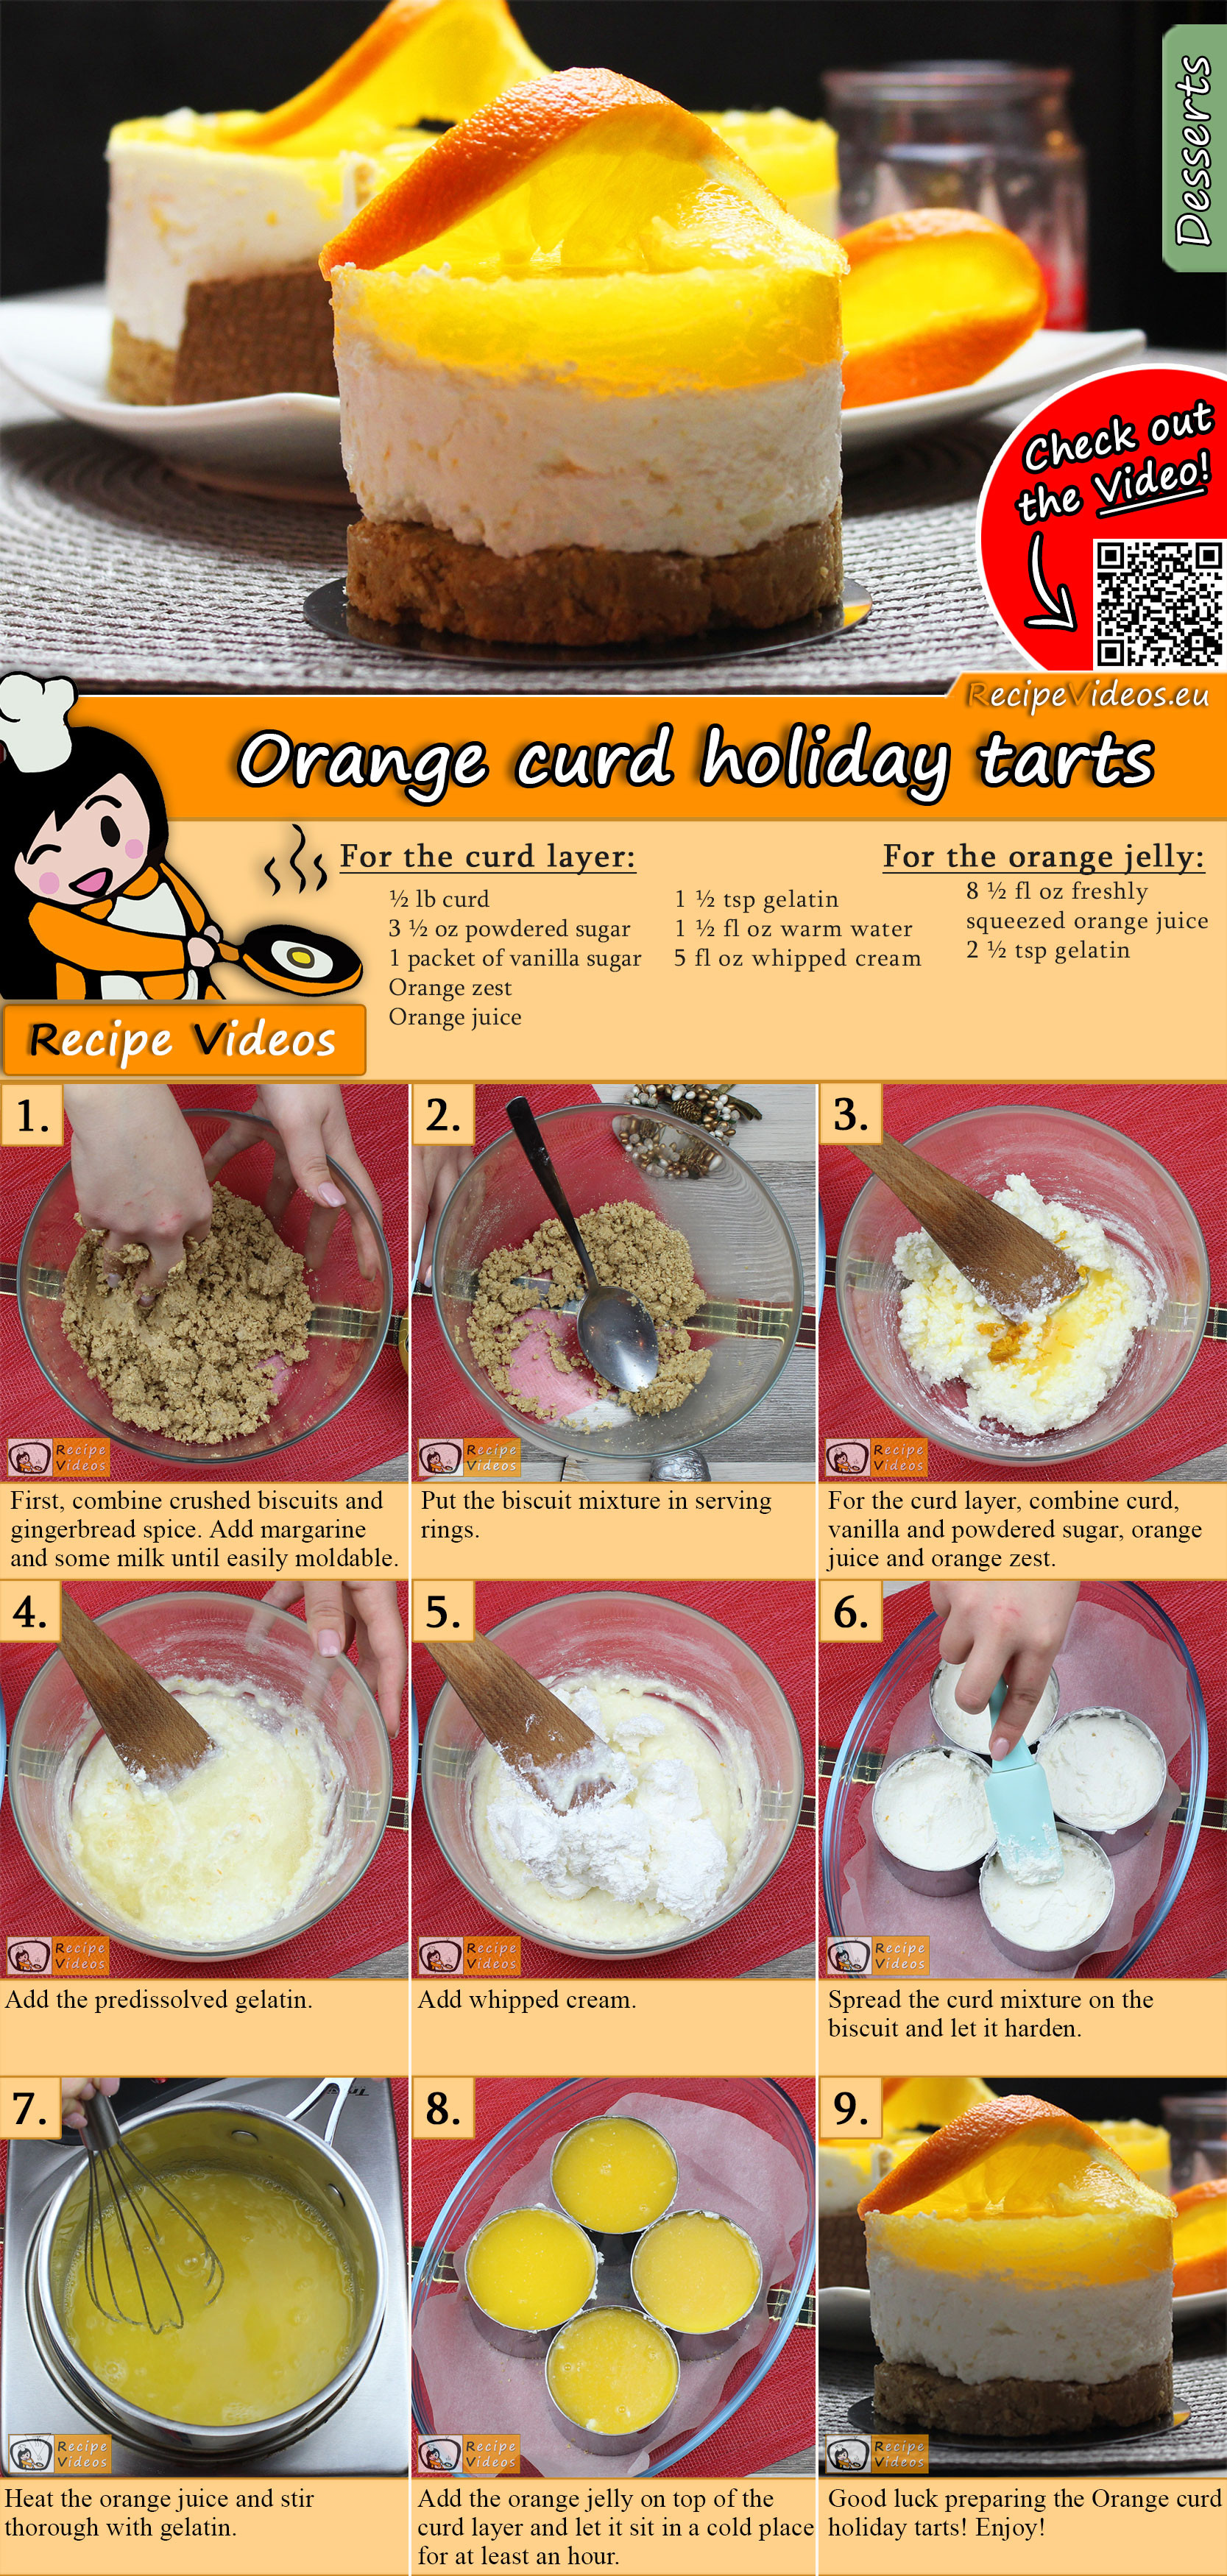 Orange curd holiday tarts recipe with video